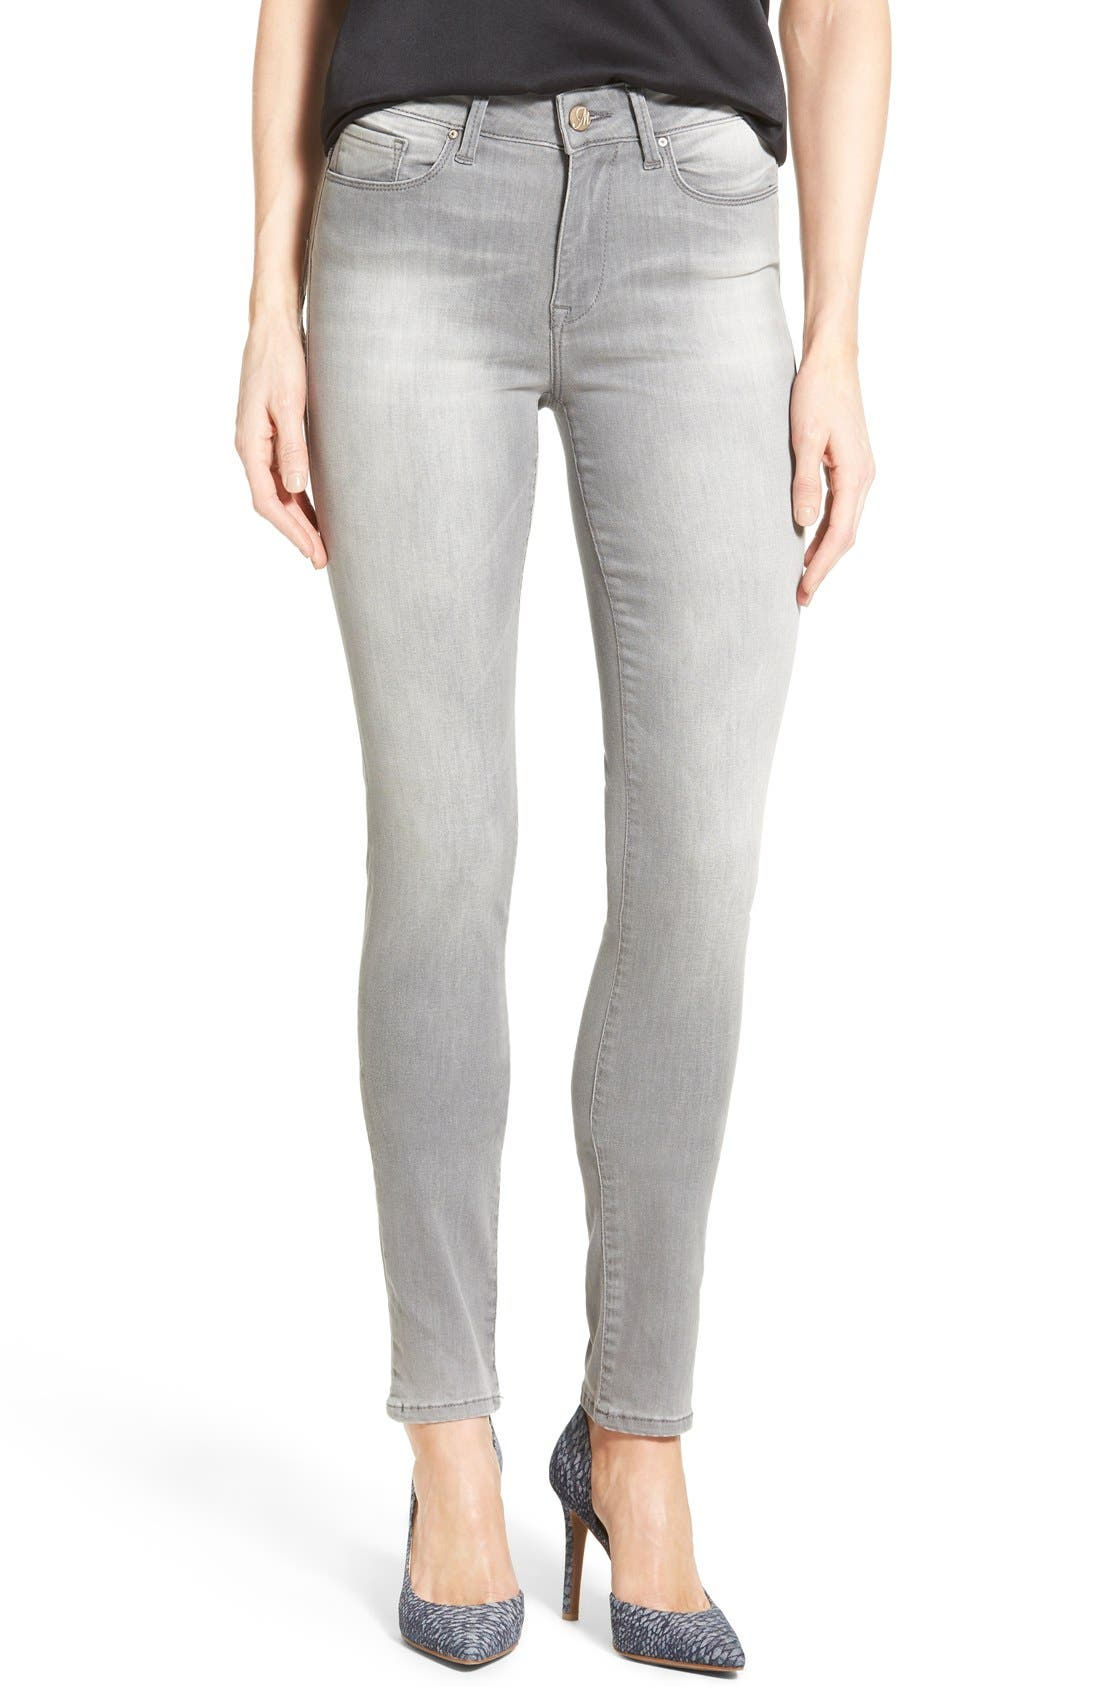 Alternate Image 1 Selected - Mavi Jeans 'Alissa' Stretch Skinny Jeans (Light Grey Tribeca) (Petite)